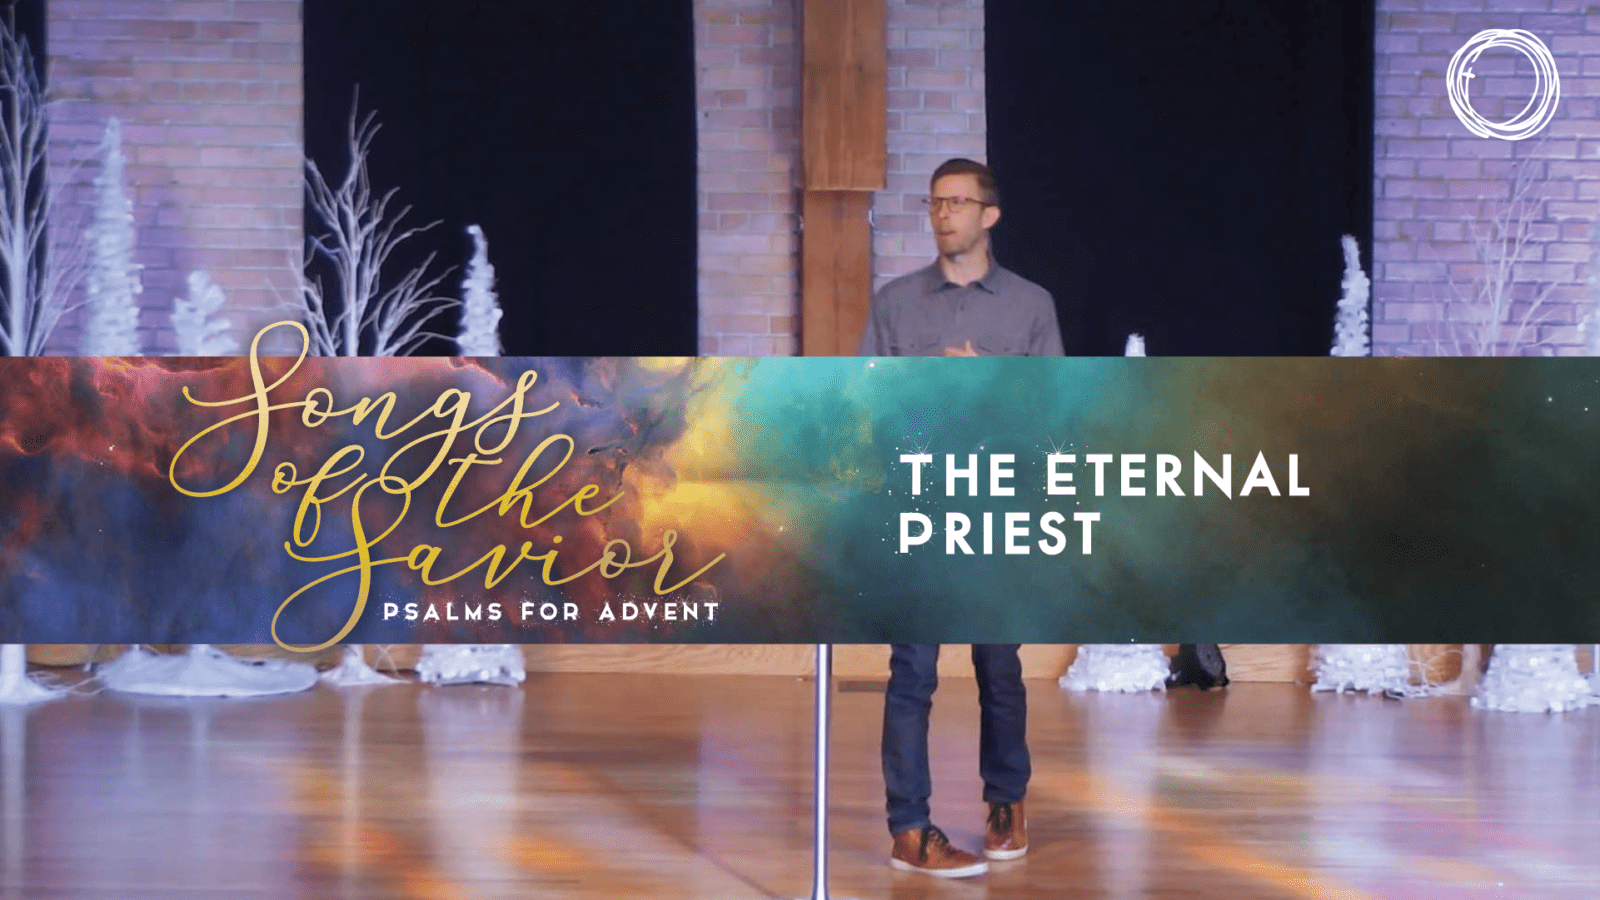 The Eternal Priest